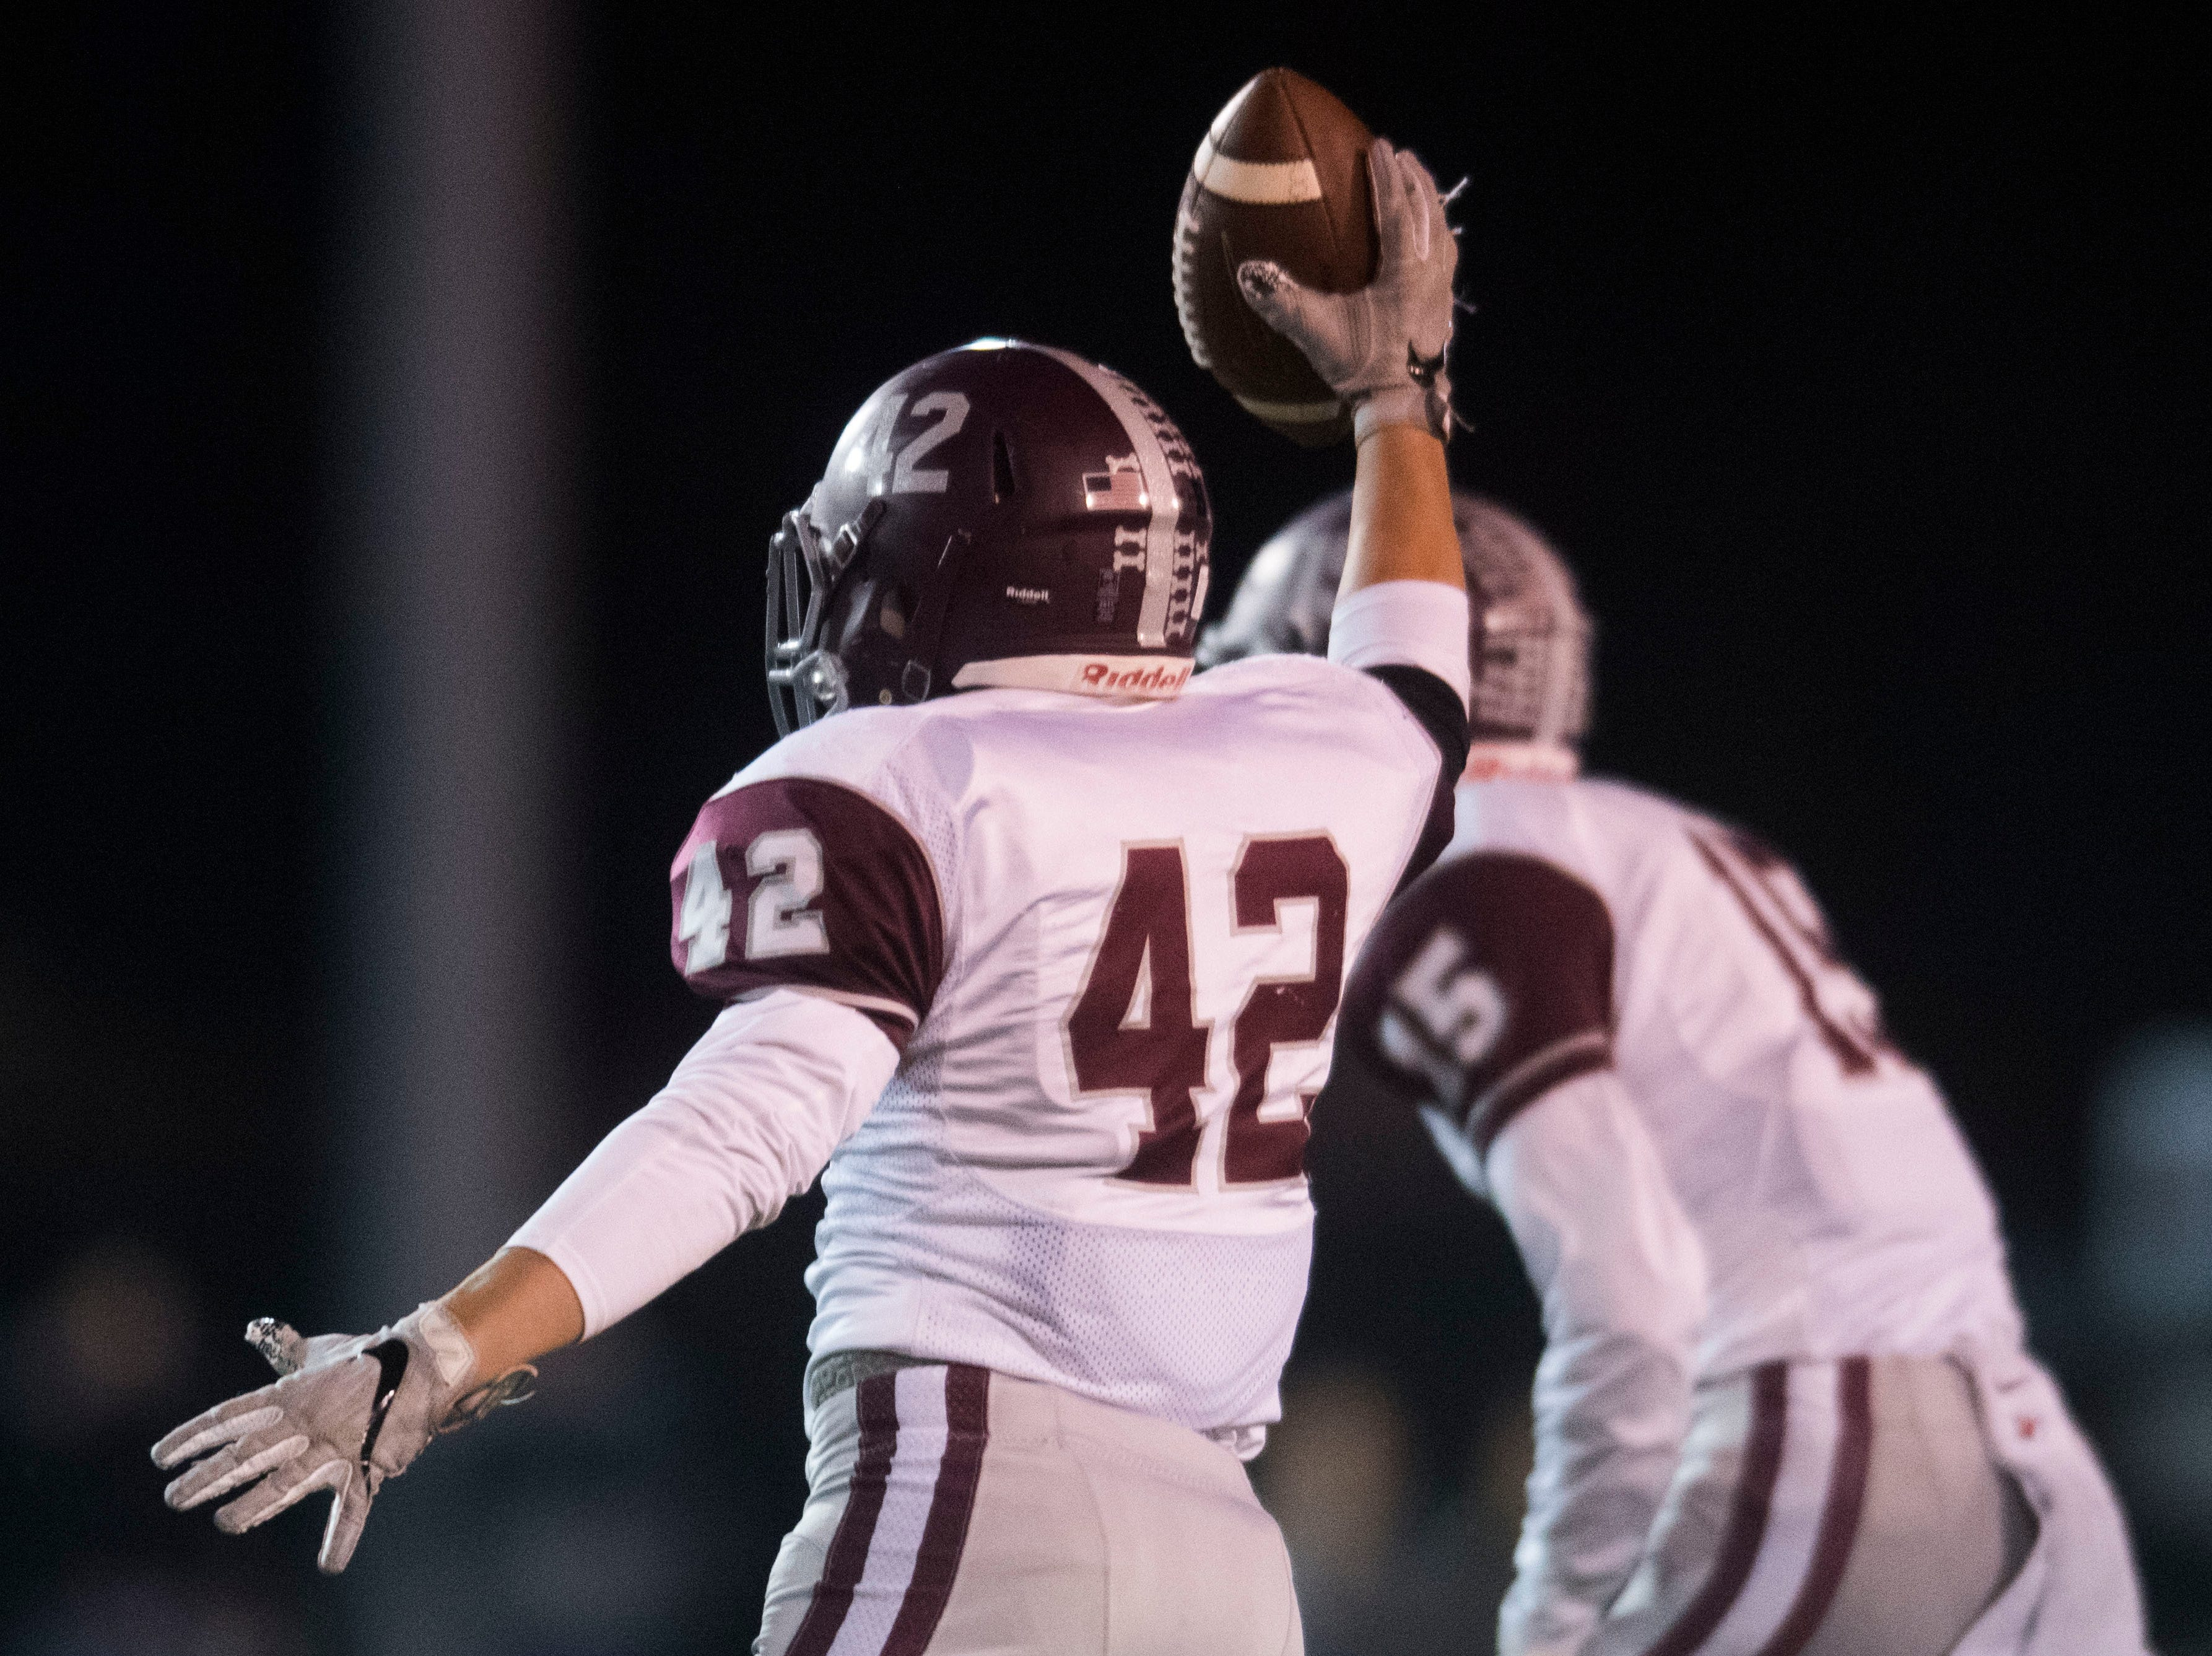 Bearden's Ty Seritt (42) holds the ball in the air after a turnover during a first round playoff game between Maryville and Bearden at Maryville, Friday, Nov. 2, 2018. Maryville defeated Bearden 28-7.